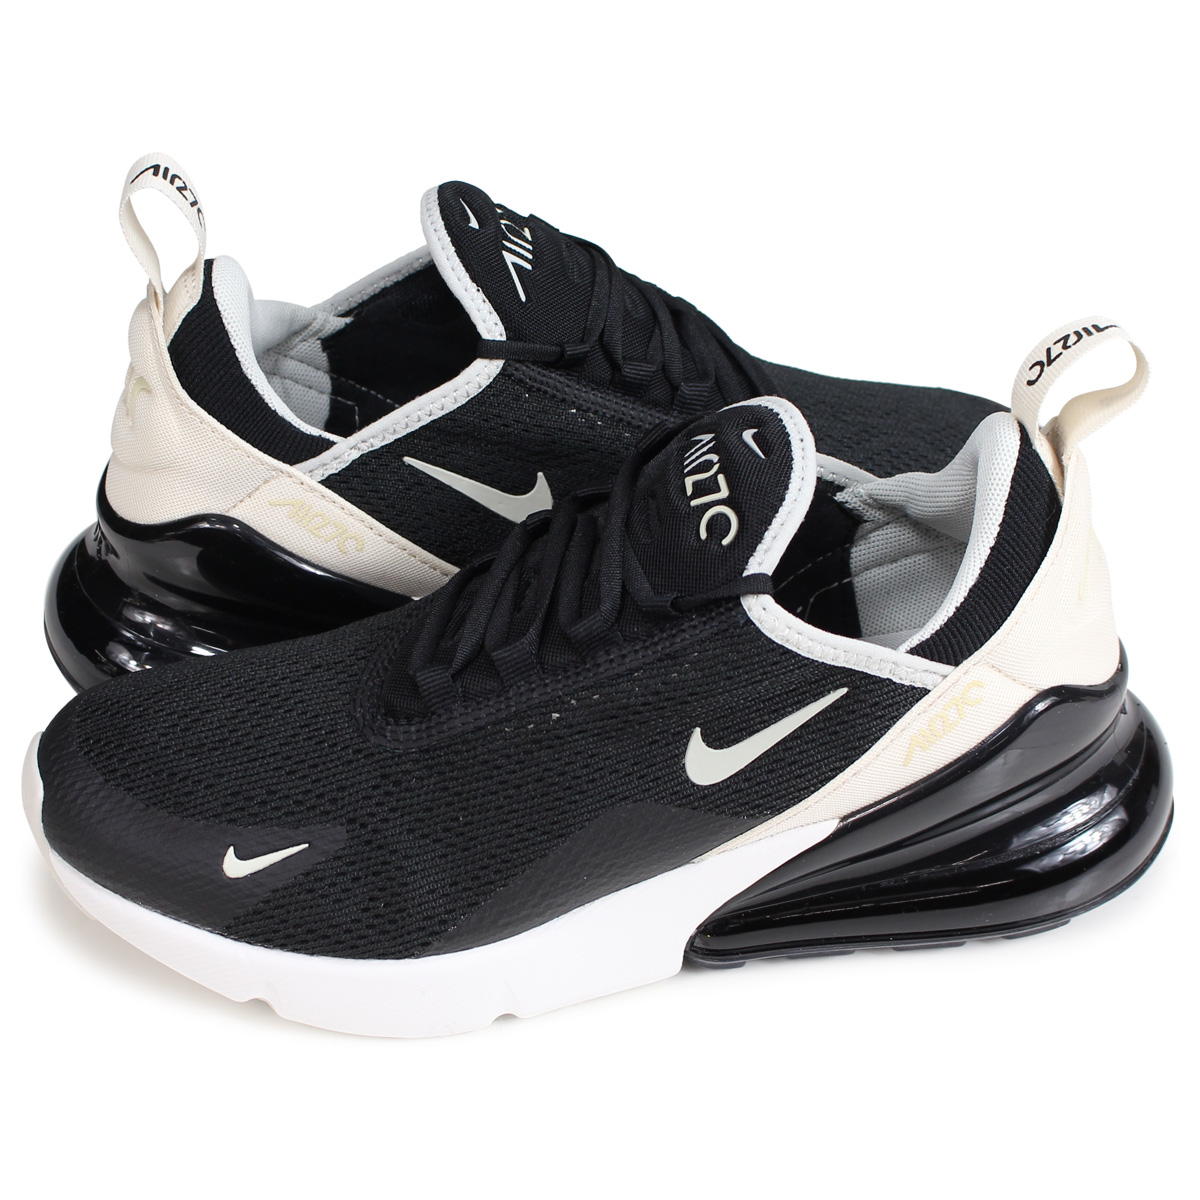 designer fashion 8331e 4717e ALLSPORTS  Nike NIKE Air Max 270 sneakers Lady s WMNS AIR MAX 270 black  AH6789-010  load planned Shinnyu load in reservation product 2 13  containing   192  ...